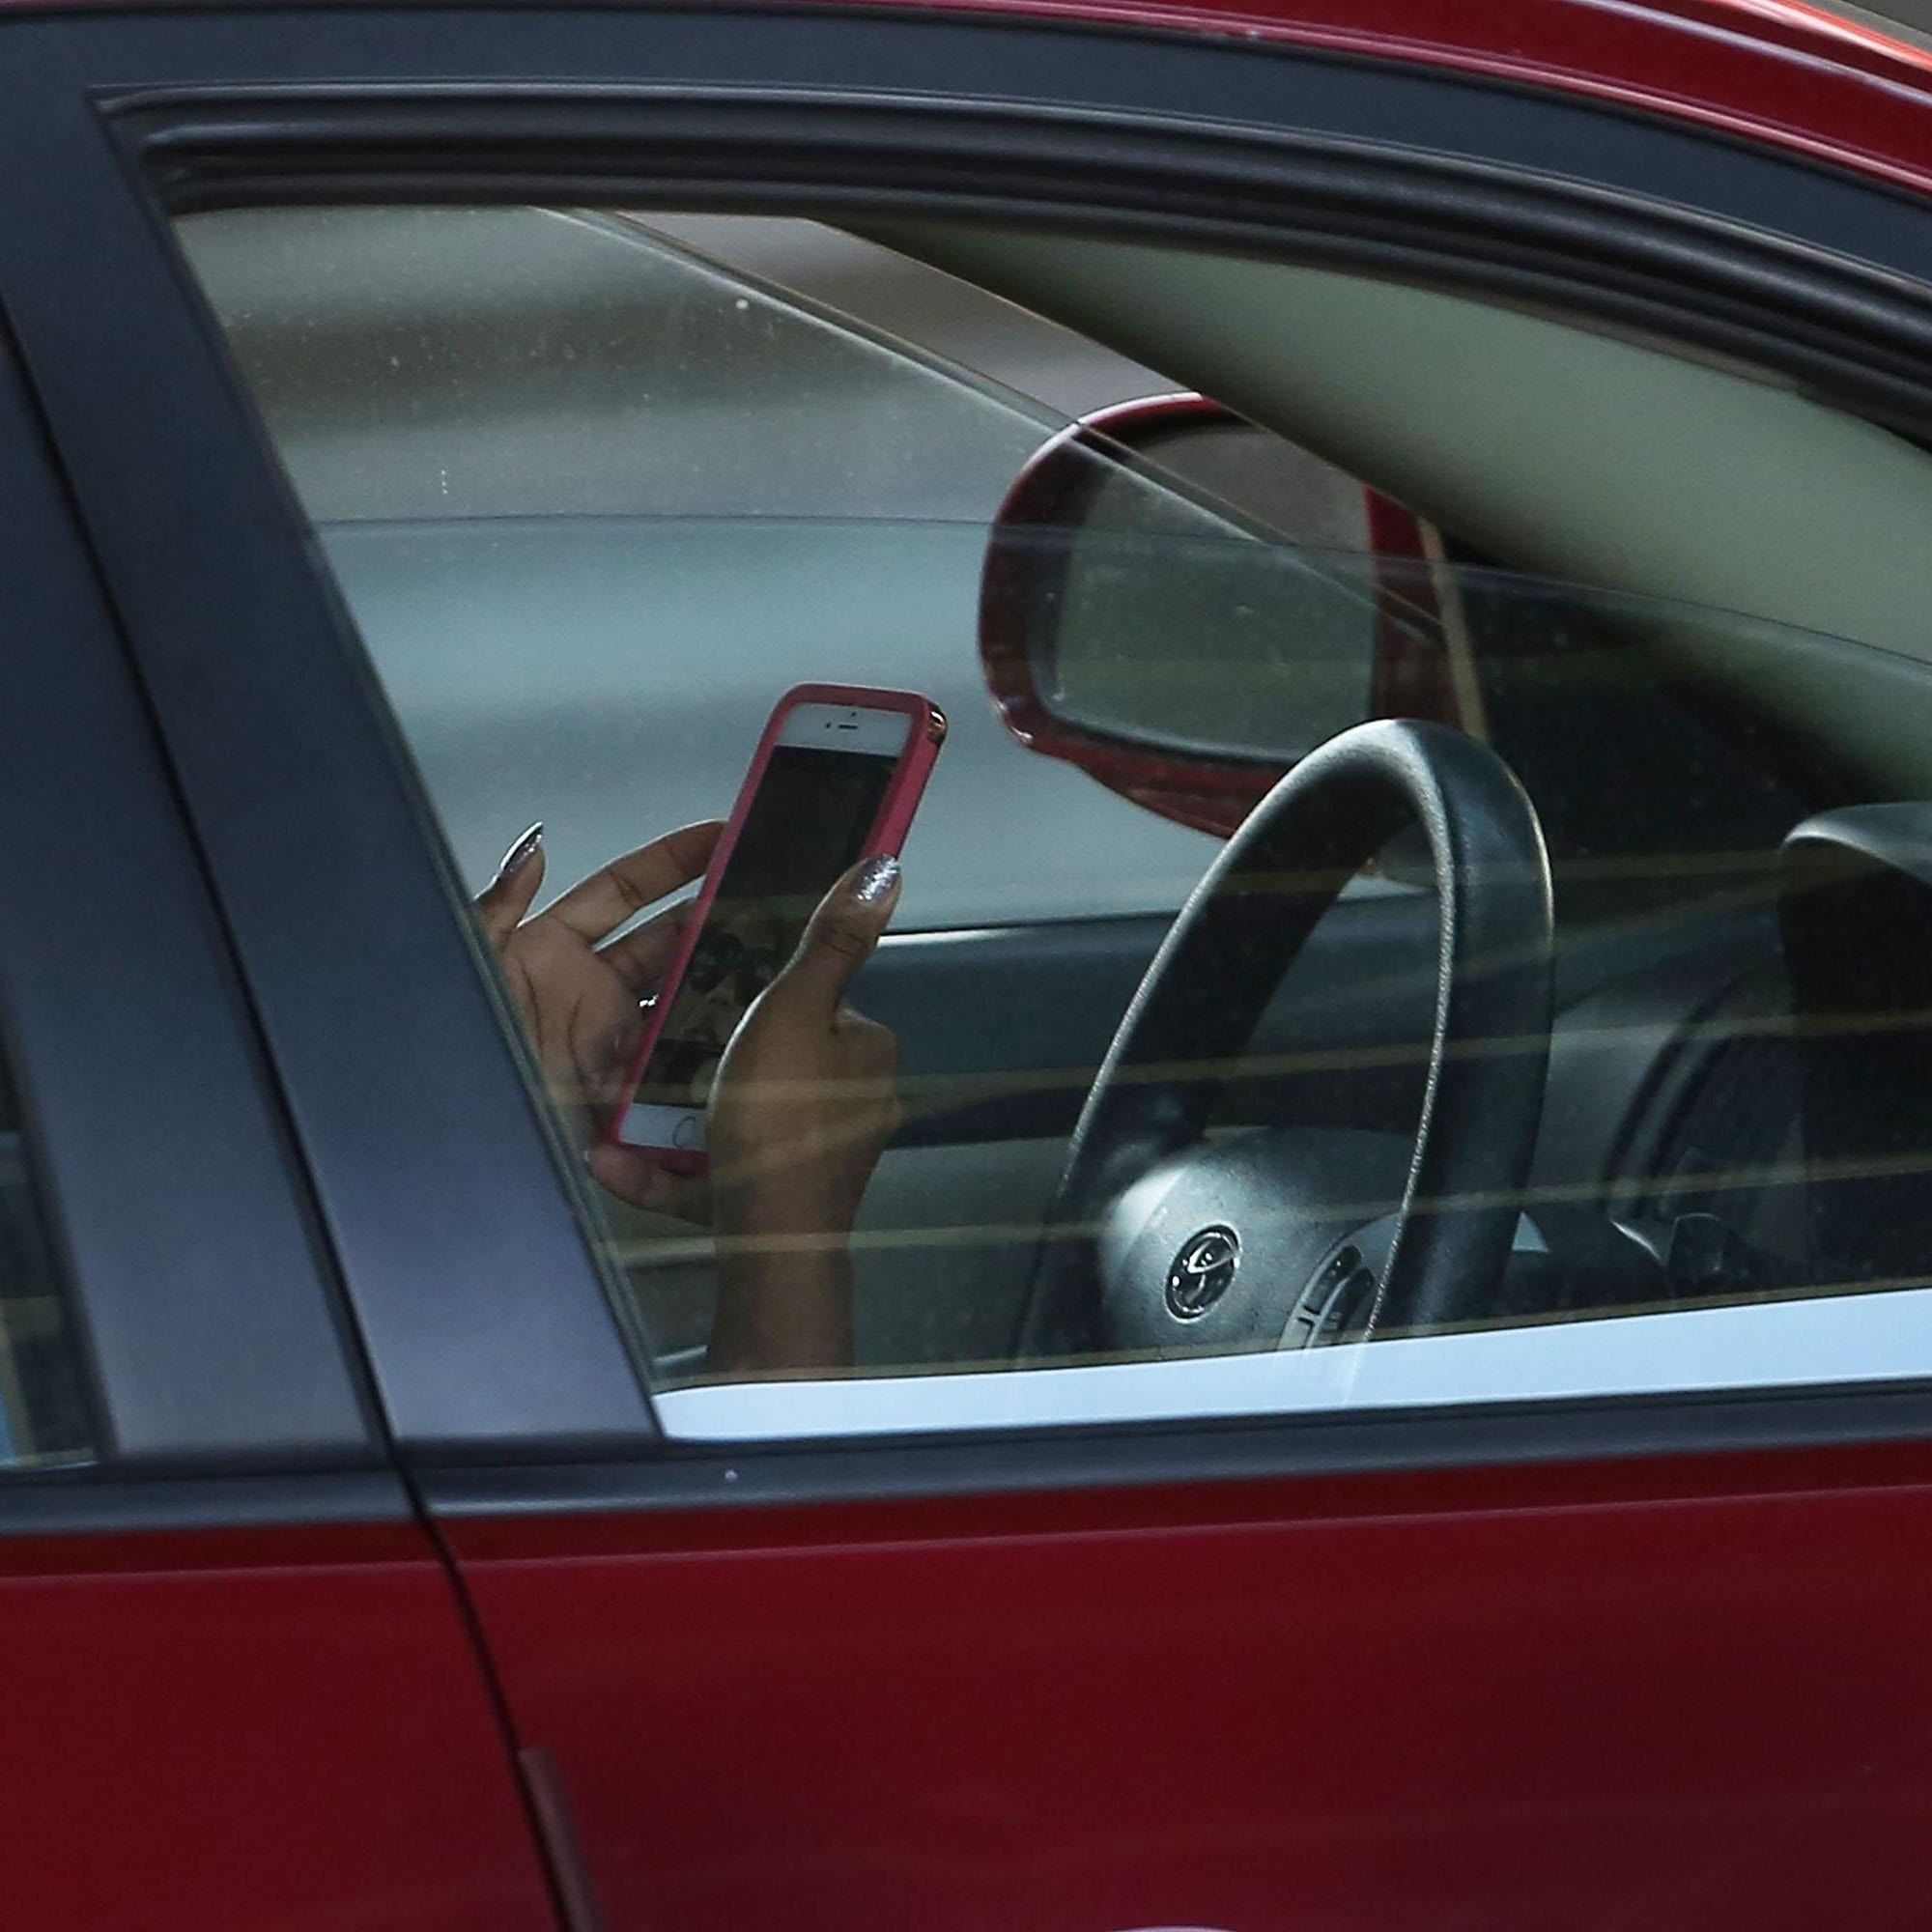 Insurers know exactly how often drivers touch their phones